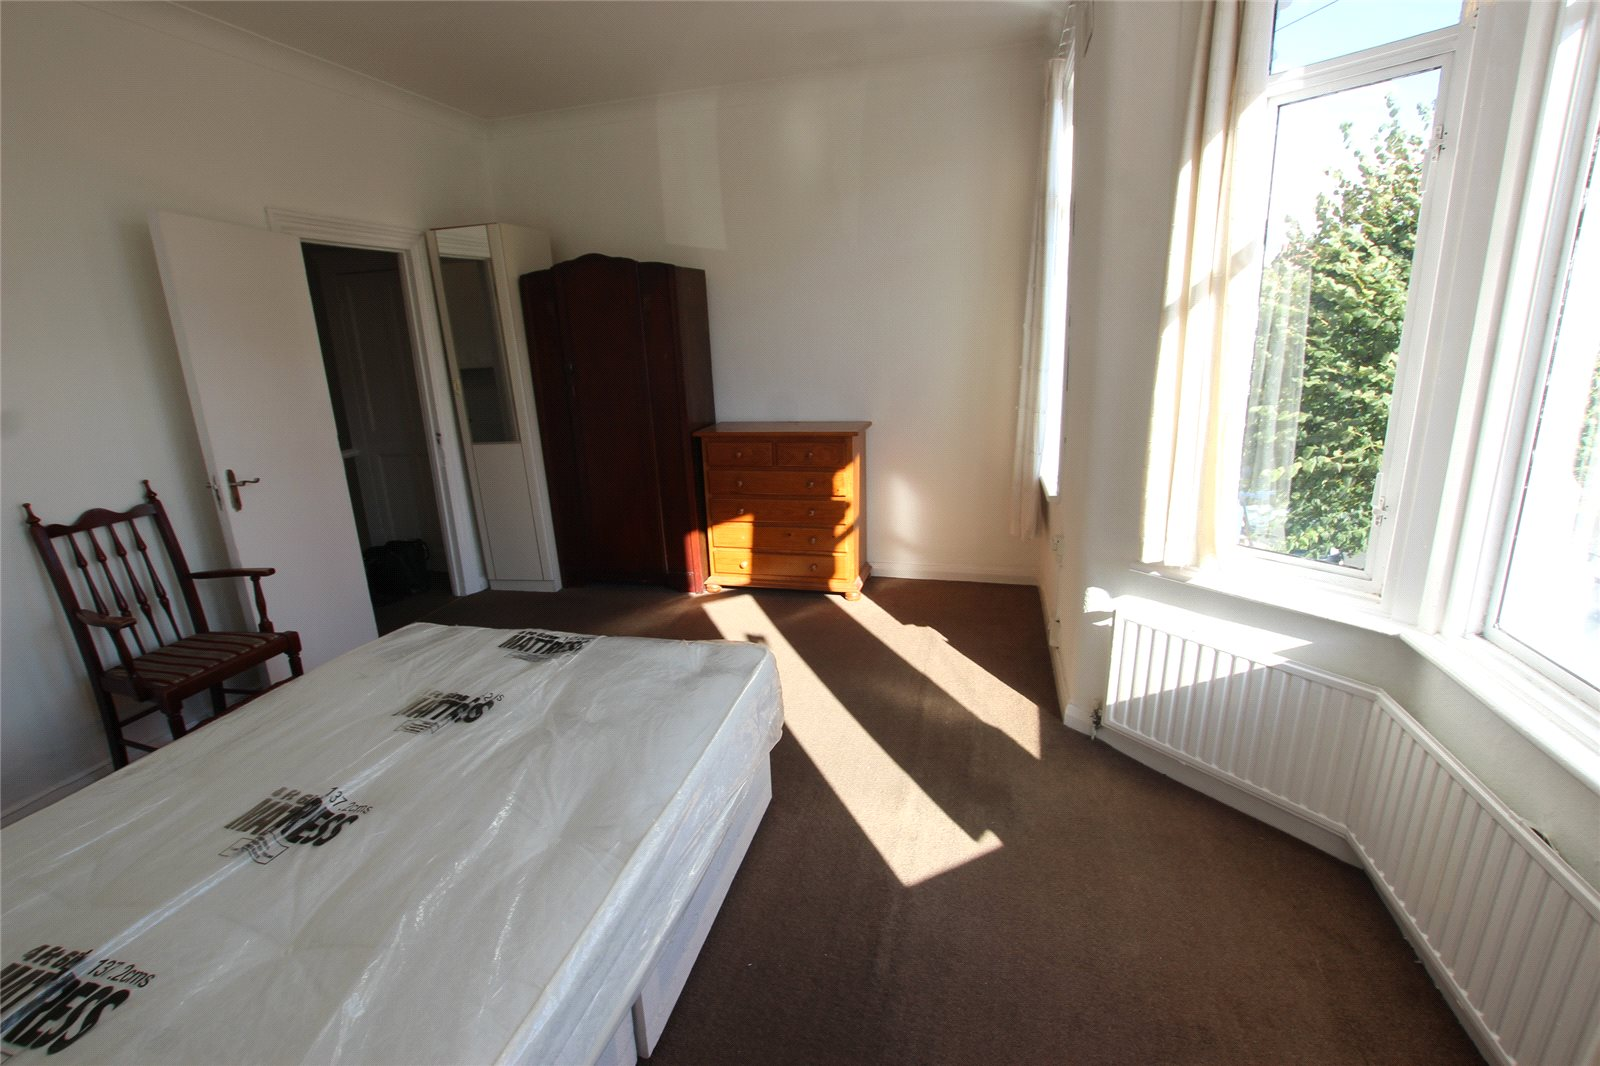 Five Double Bedroom House with Garden- E12